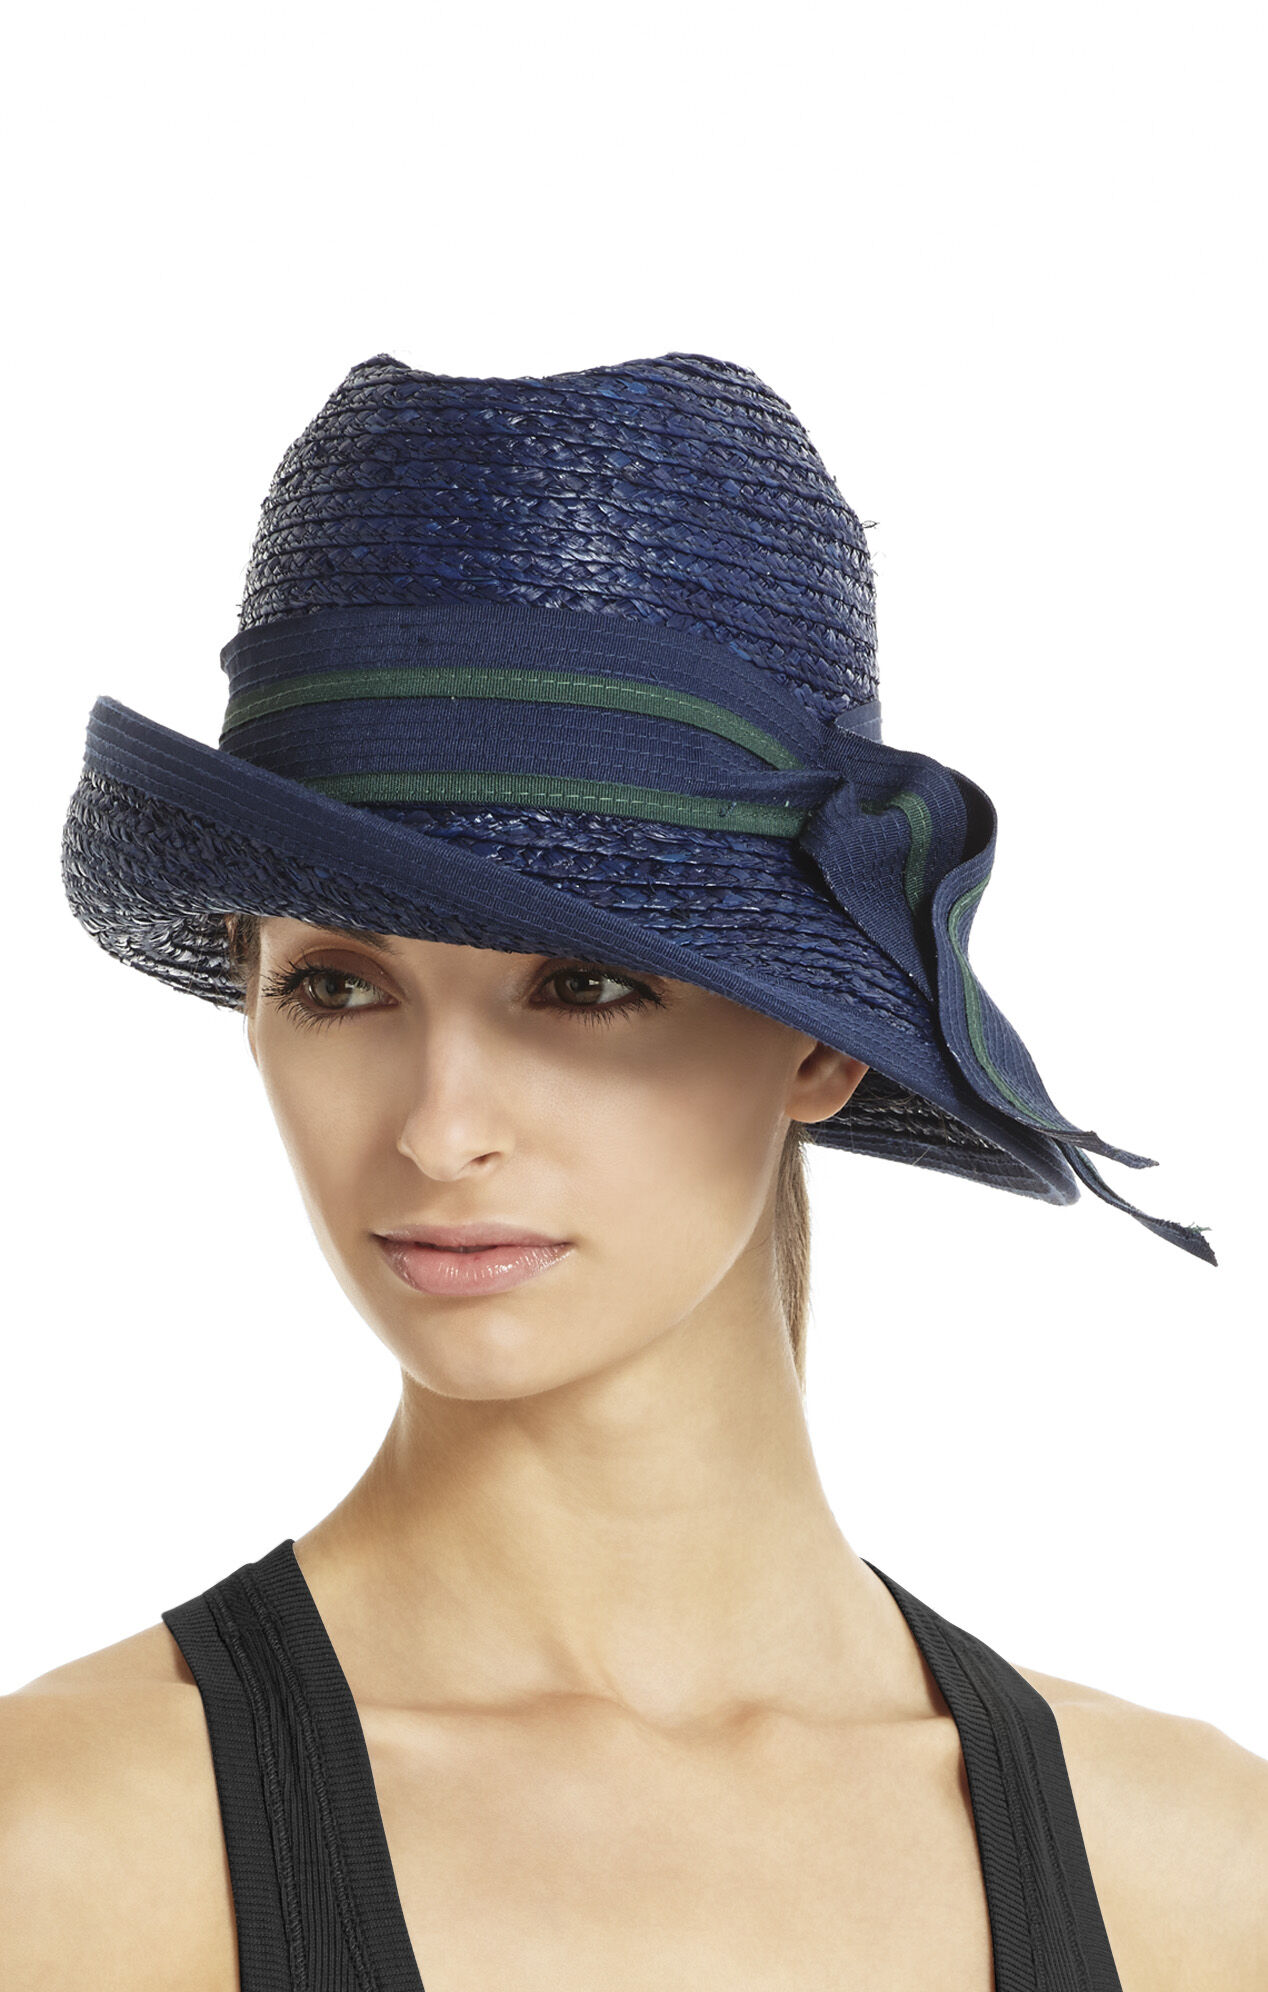 Asymmetrical-Brim Hat with Bow